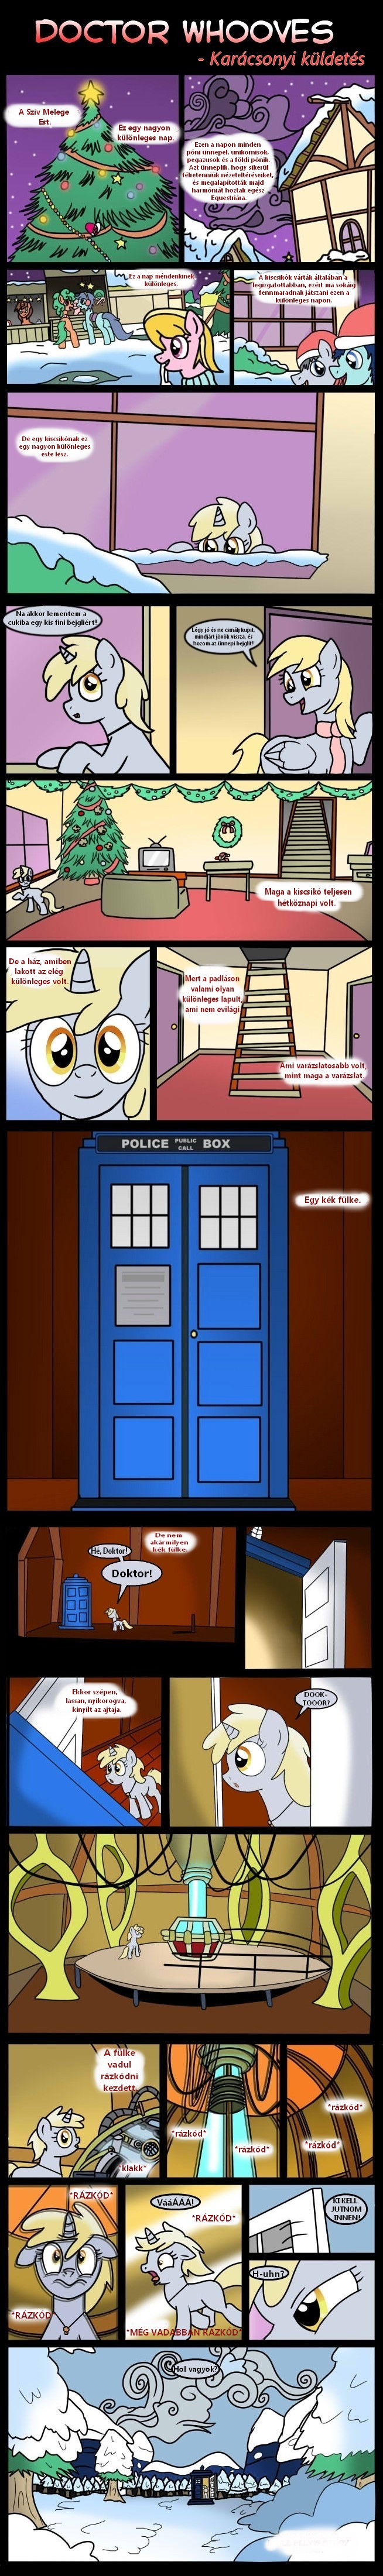 Doctor Whooves christmas special pt 1